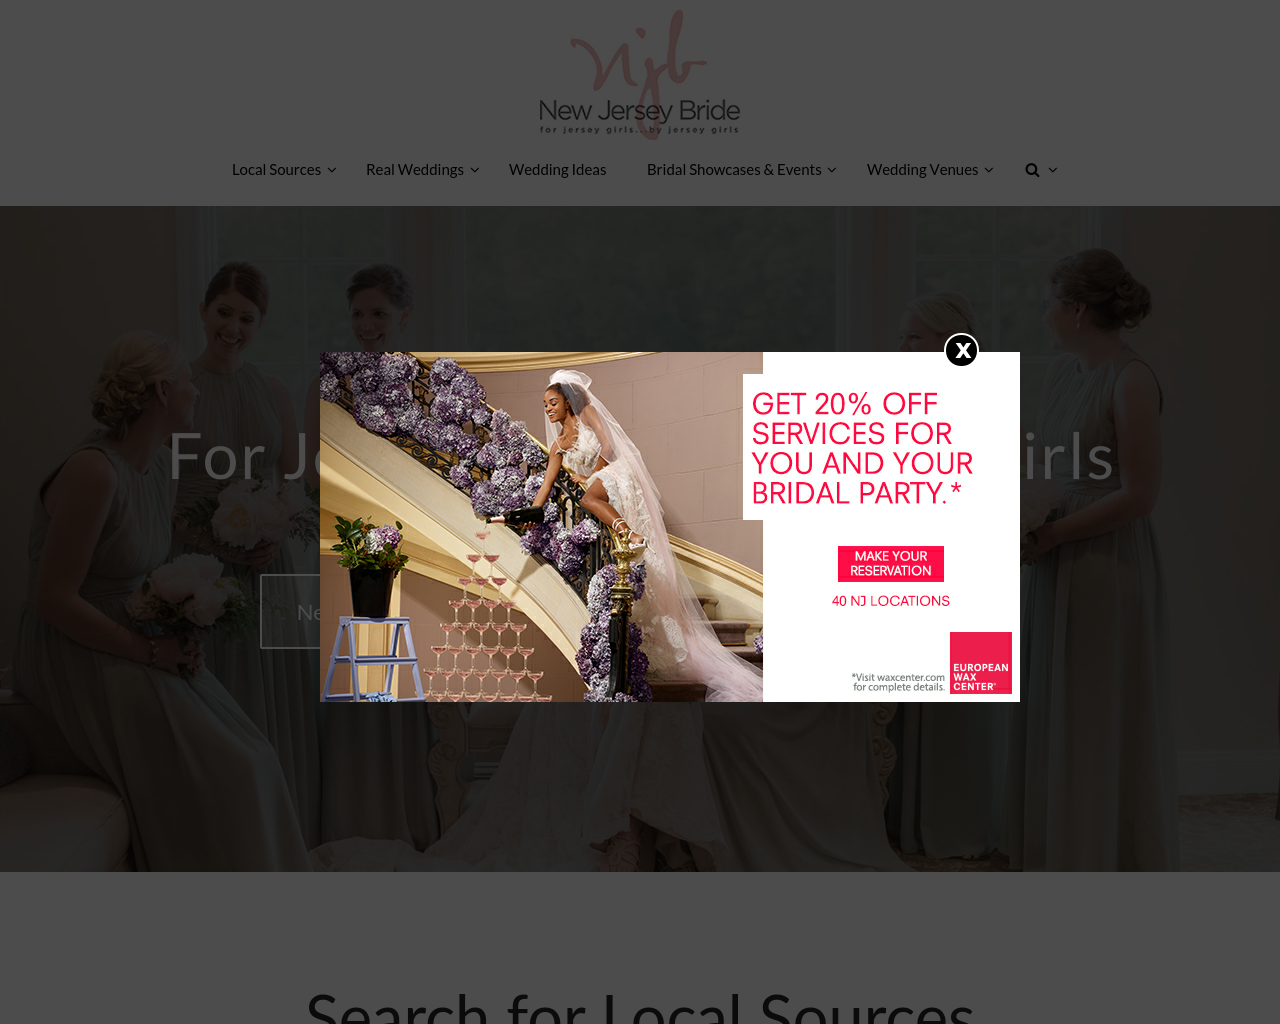 New-Jersey-Bride-Advertising-Reviews-Pricing